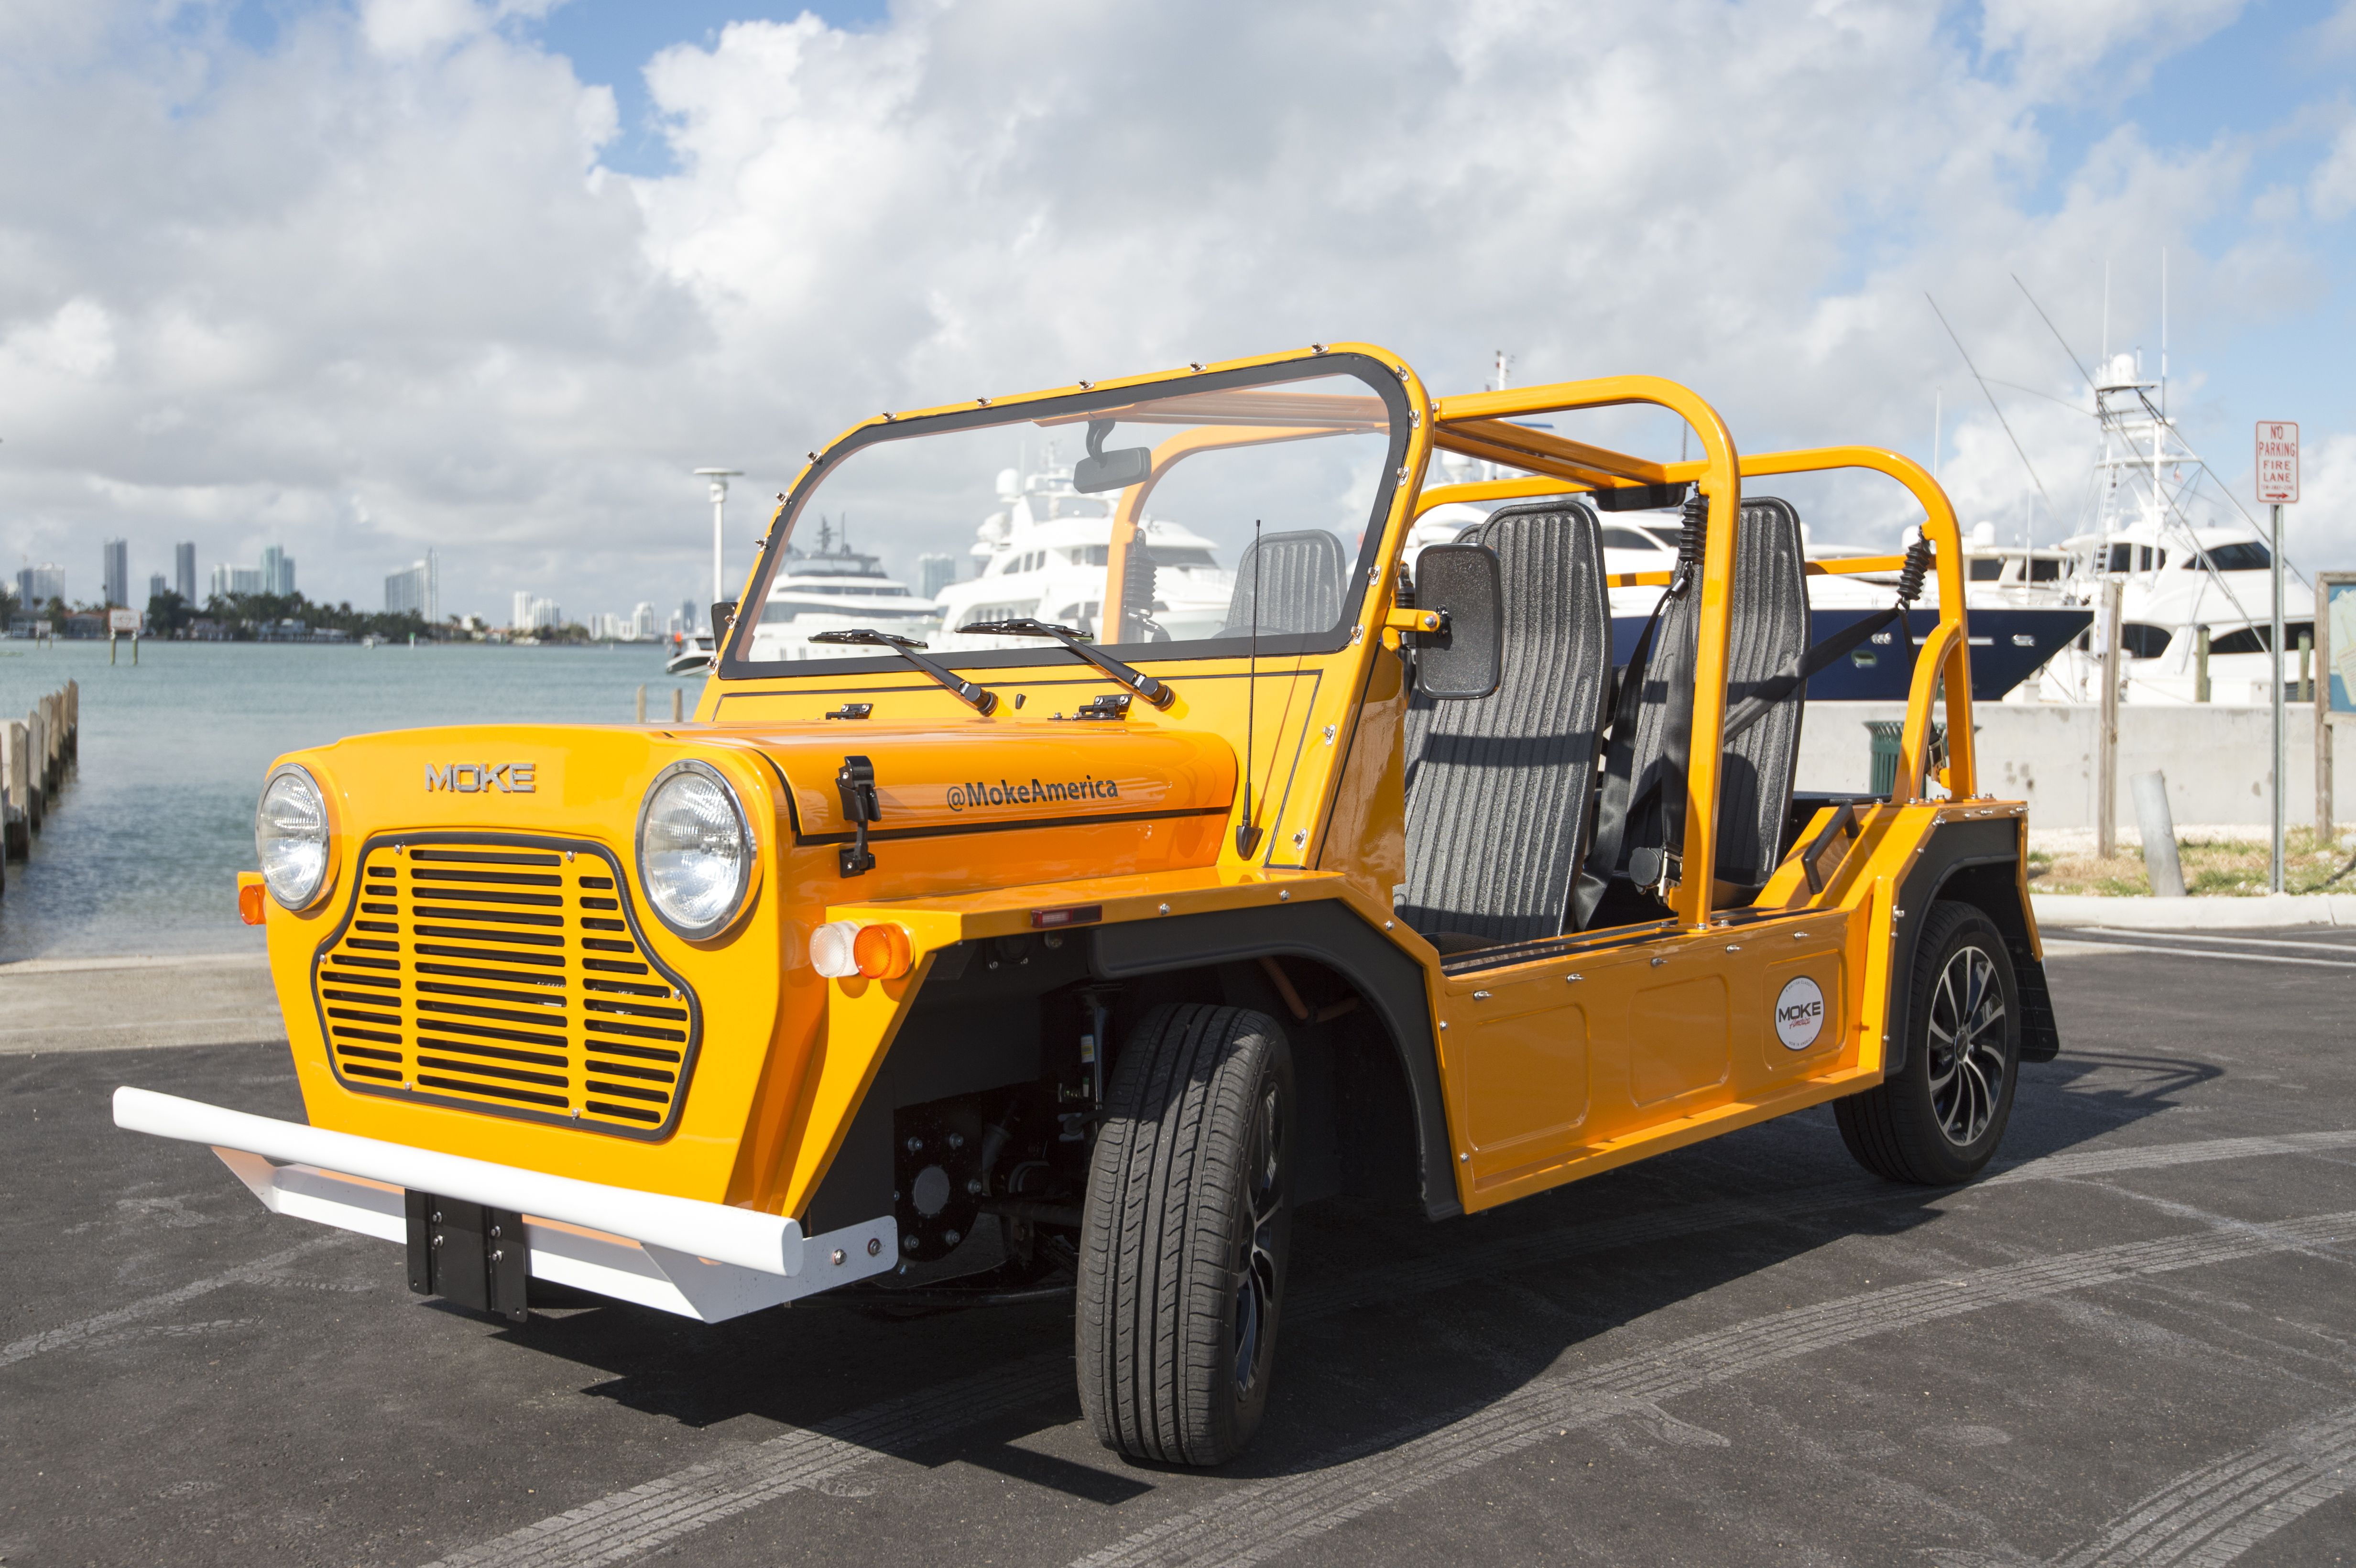 hight resolution of introducing moke america a 20th century collectible car reinvented with 21st century green friendly electric power available exclusively in